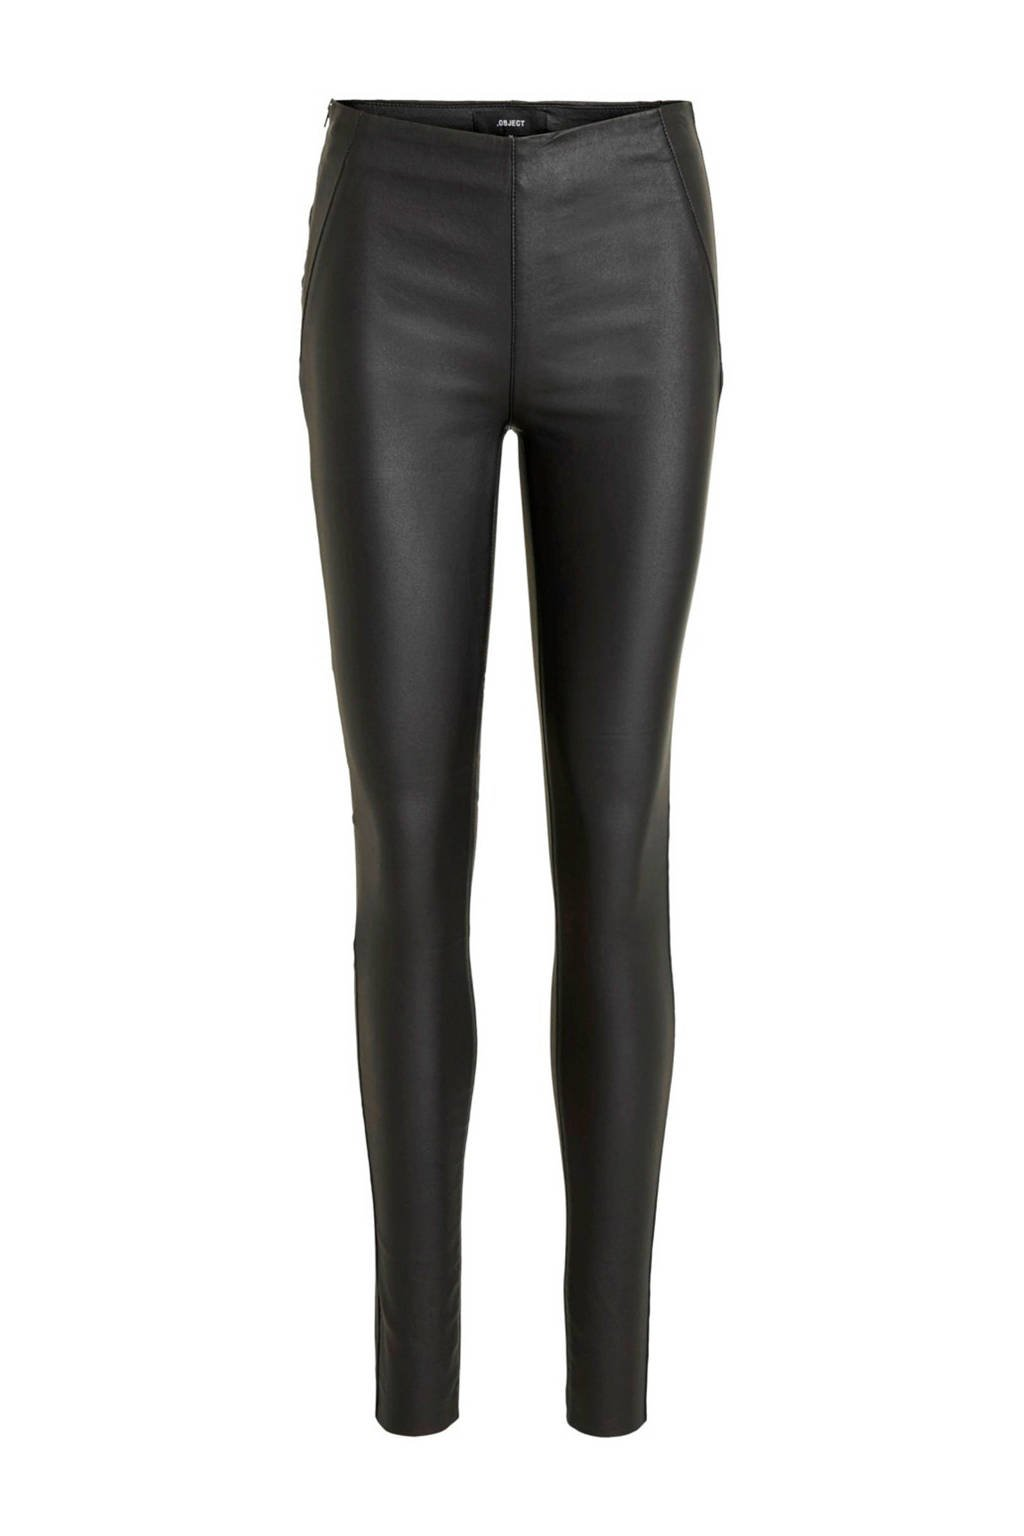 OBJECT coated legging zwart, Zwart